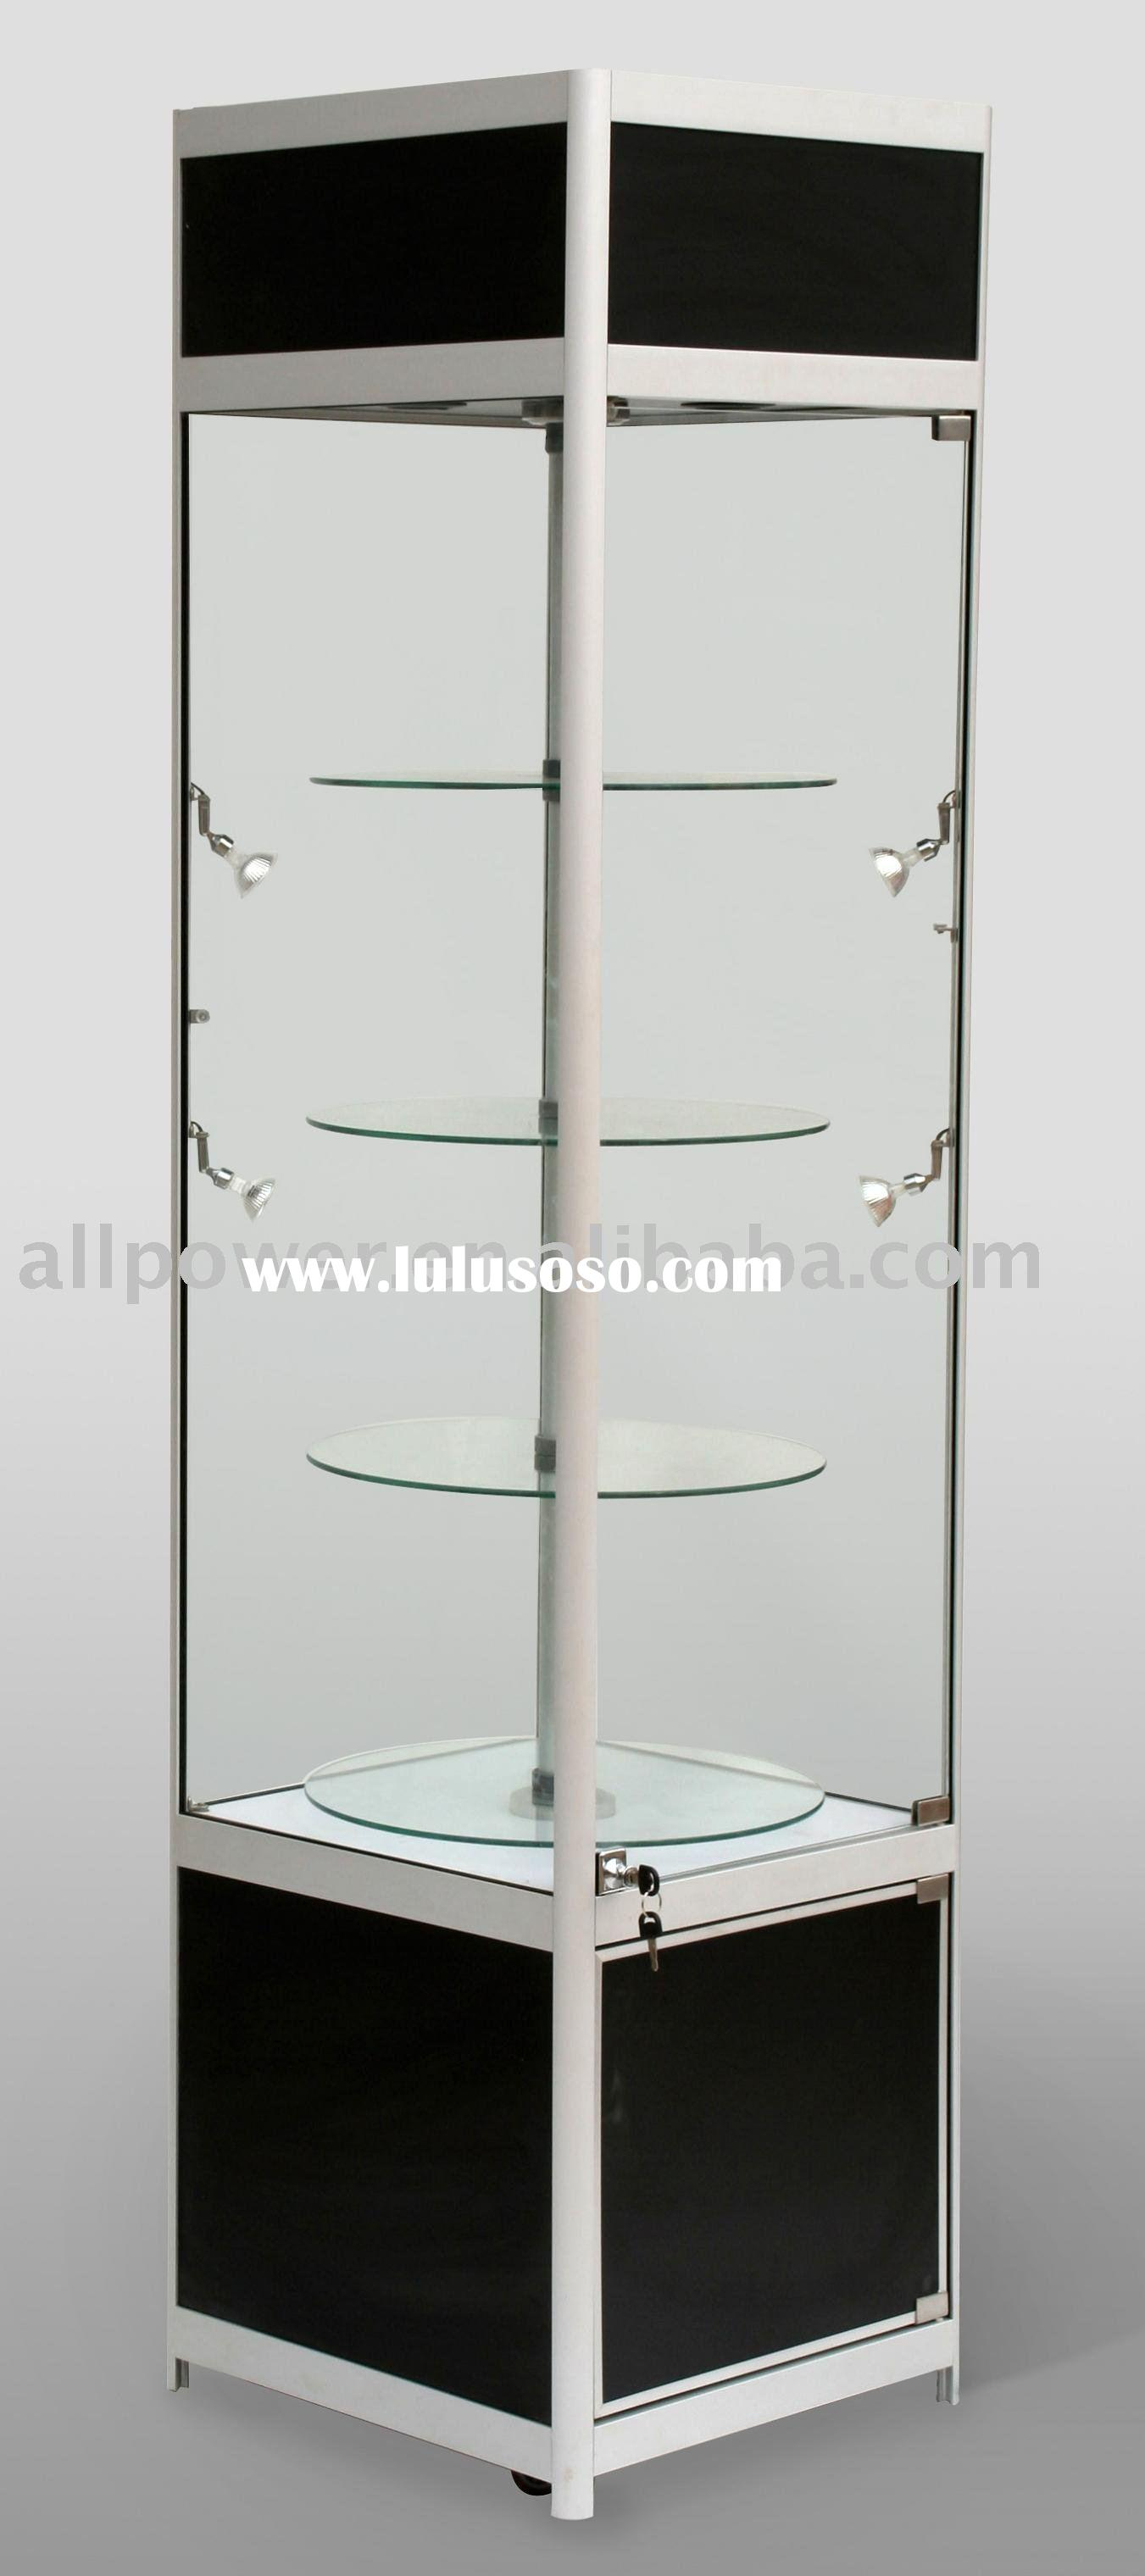 Revolving Display Cabinet 53 With Revolving Display Cabinet throughout size 1351 X 3040